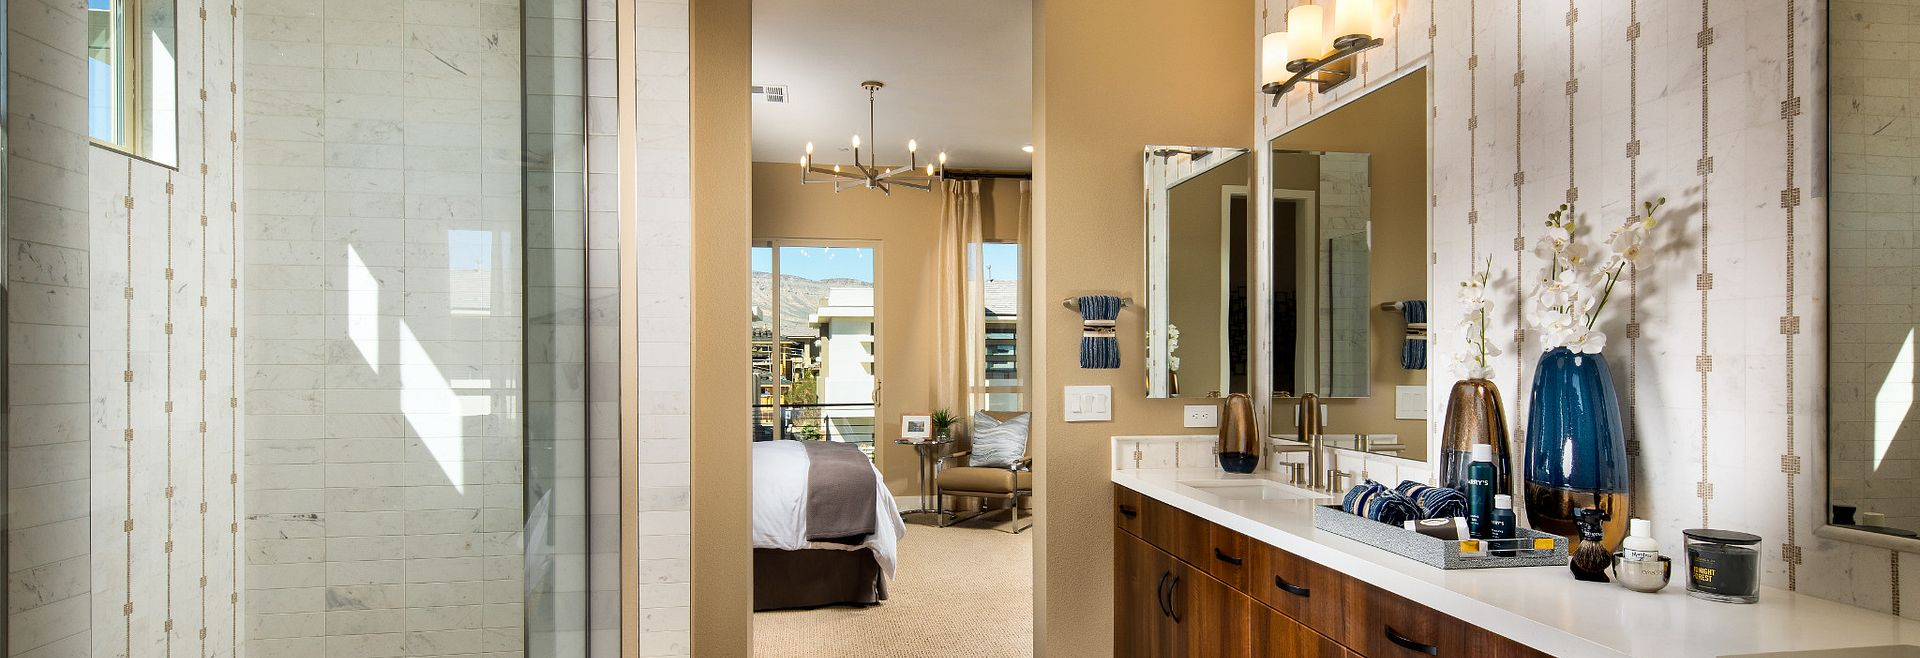 Trilogy Summerlin Apex Master Bath